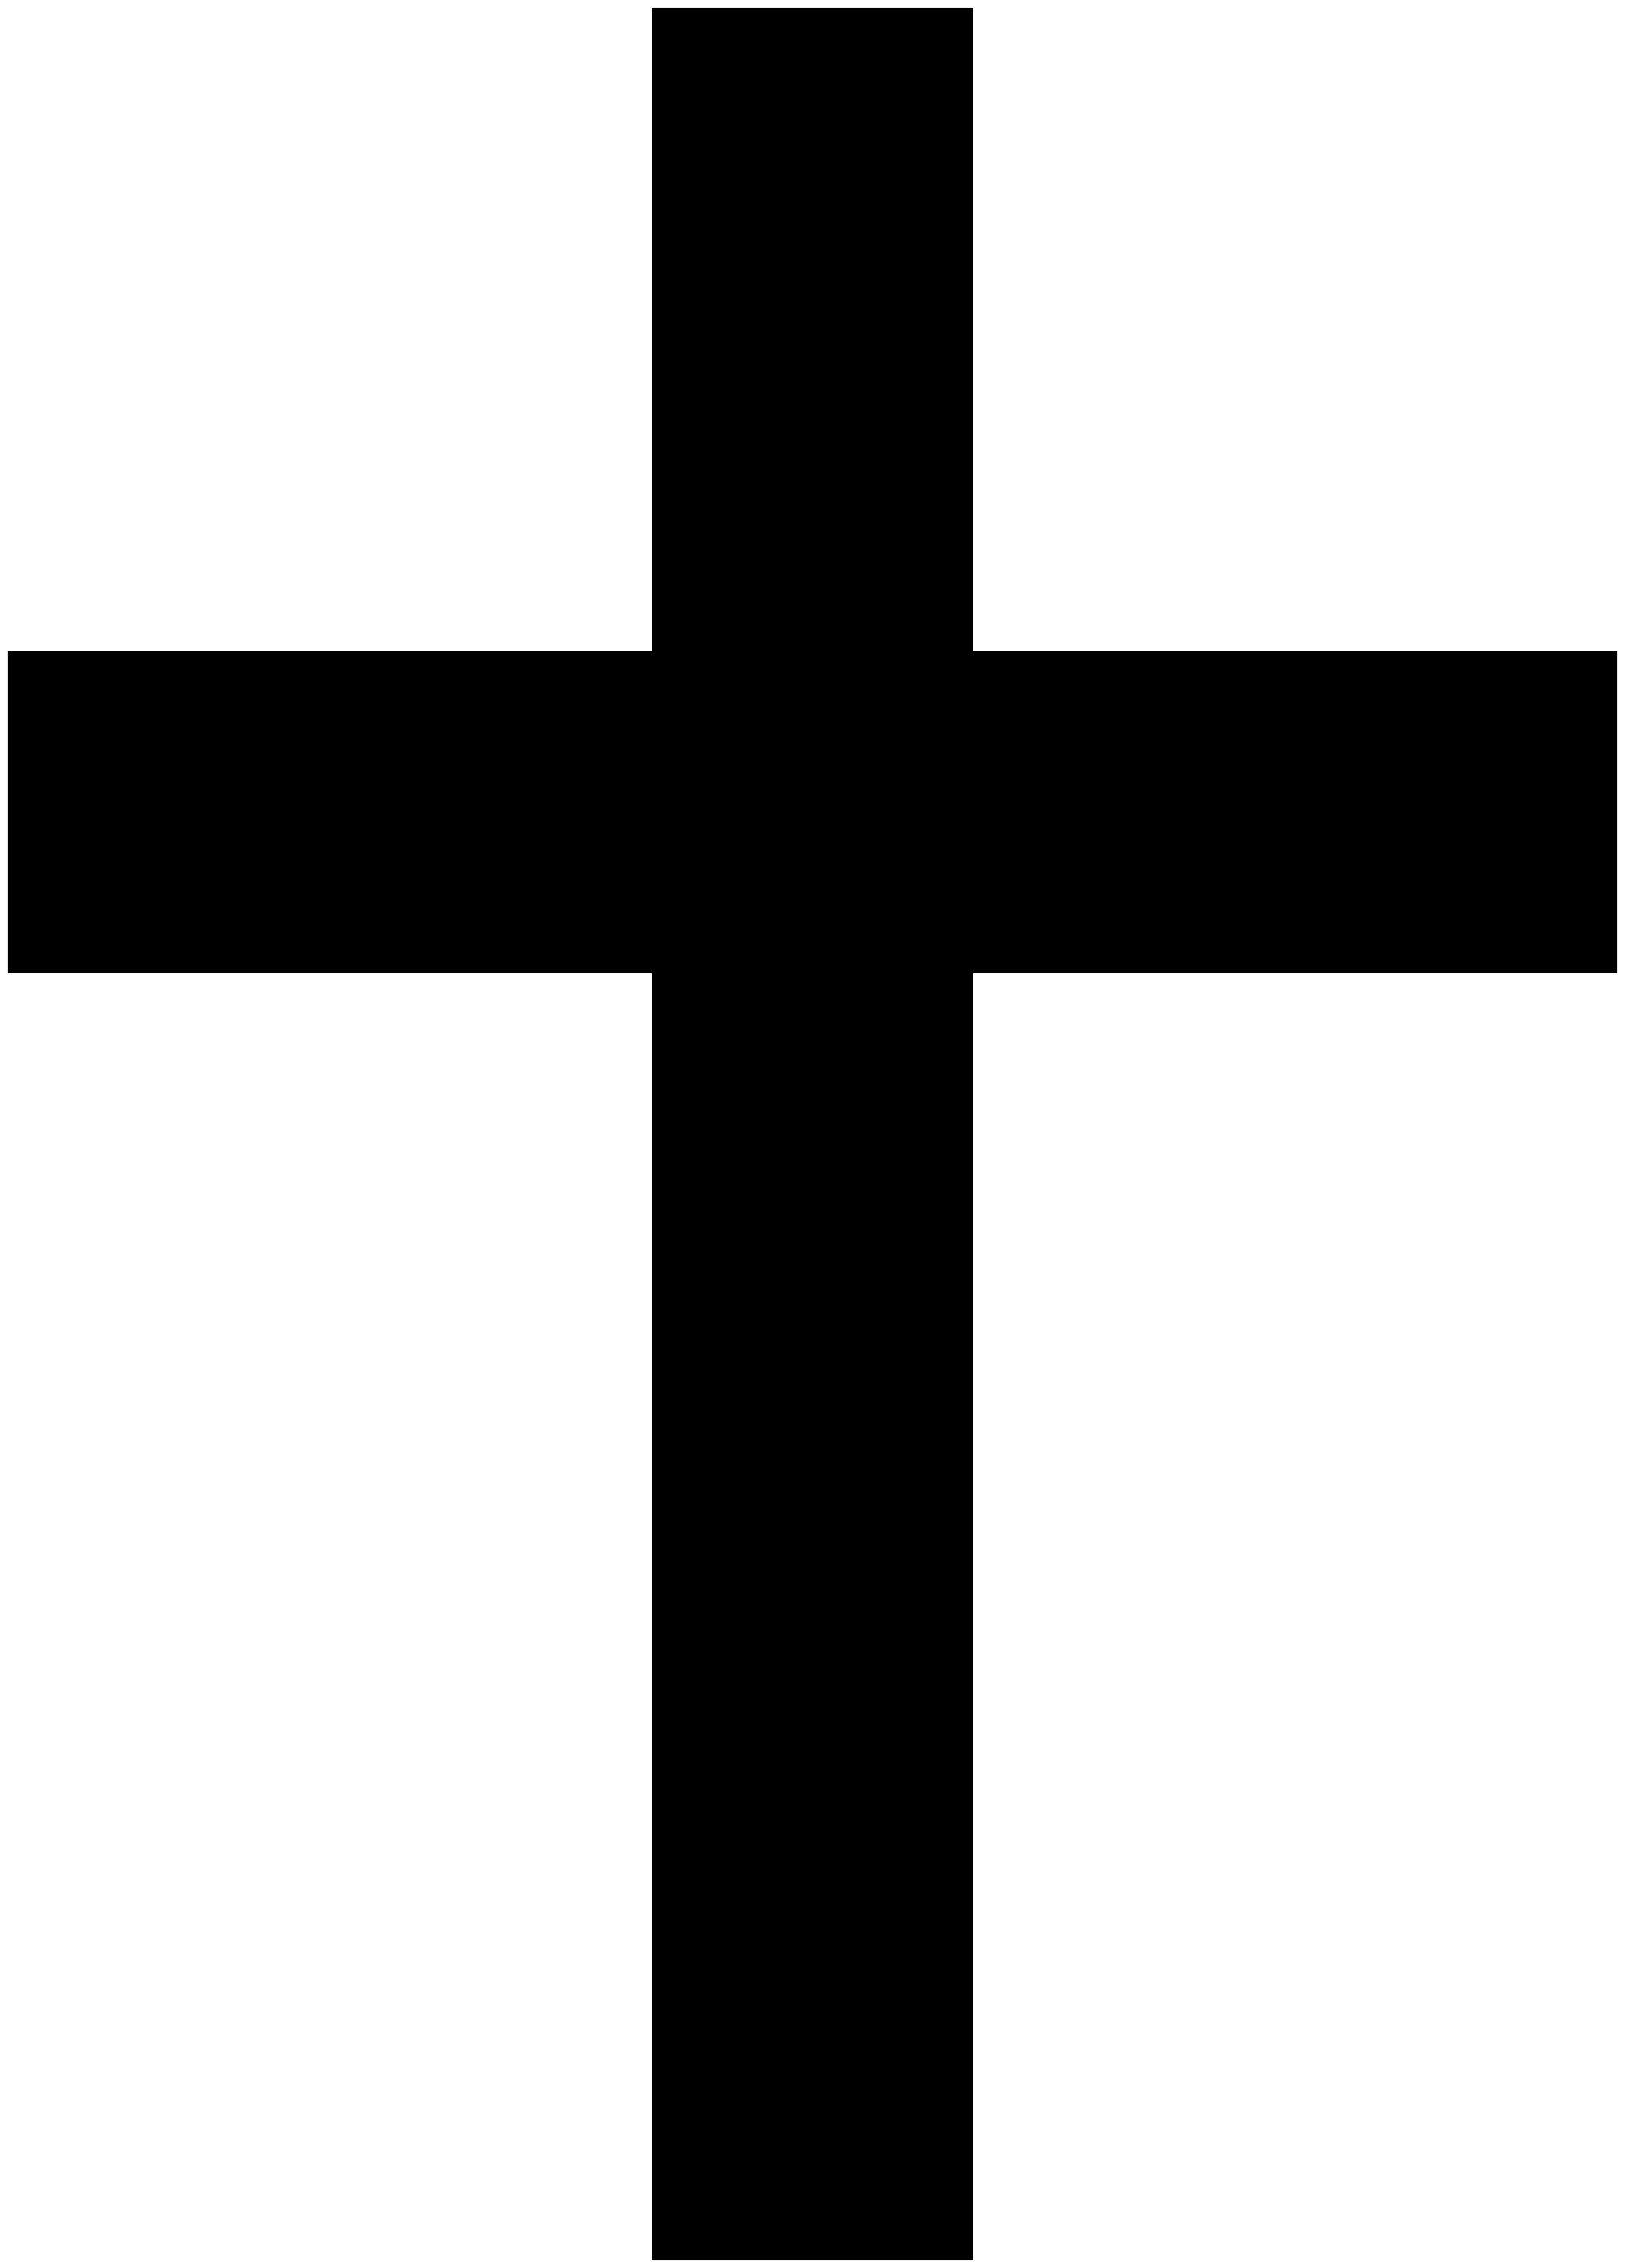 Cross clipart. Simple christian transparent png